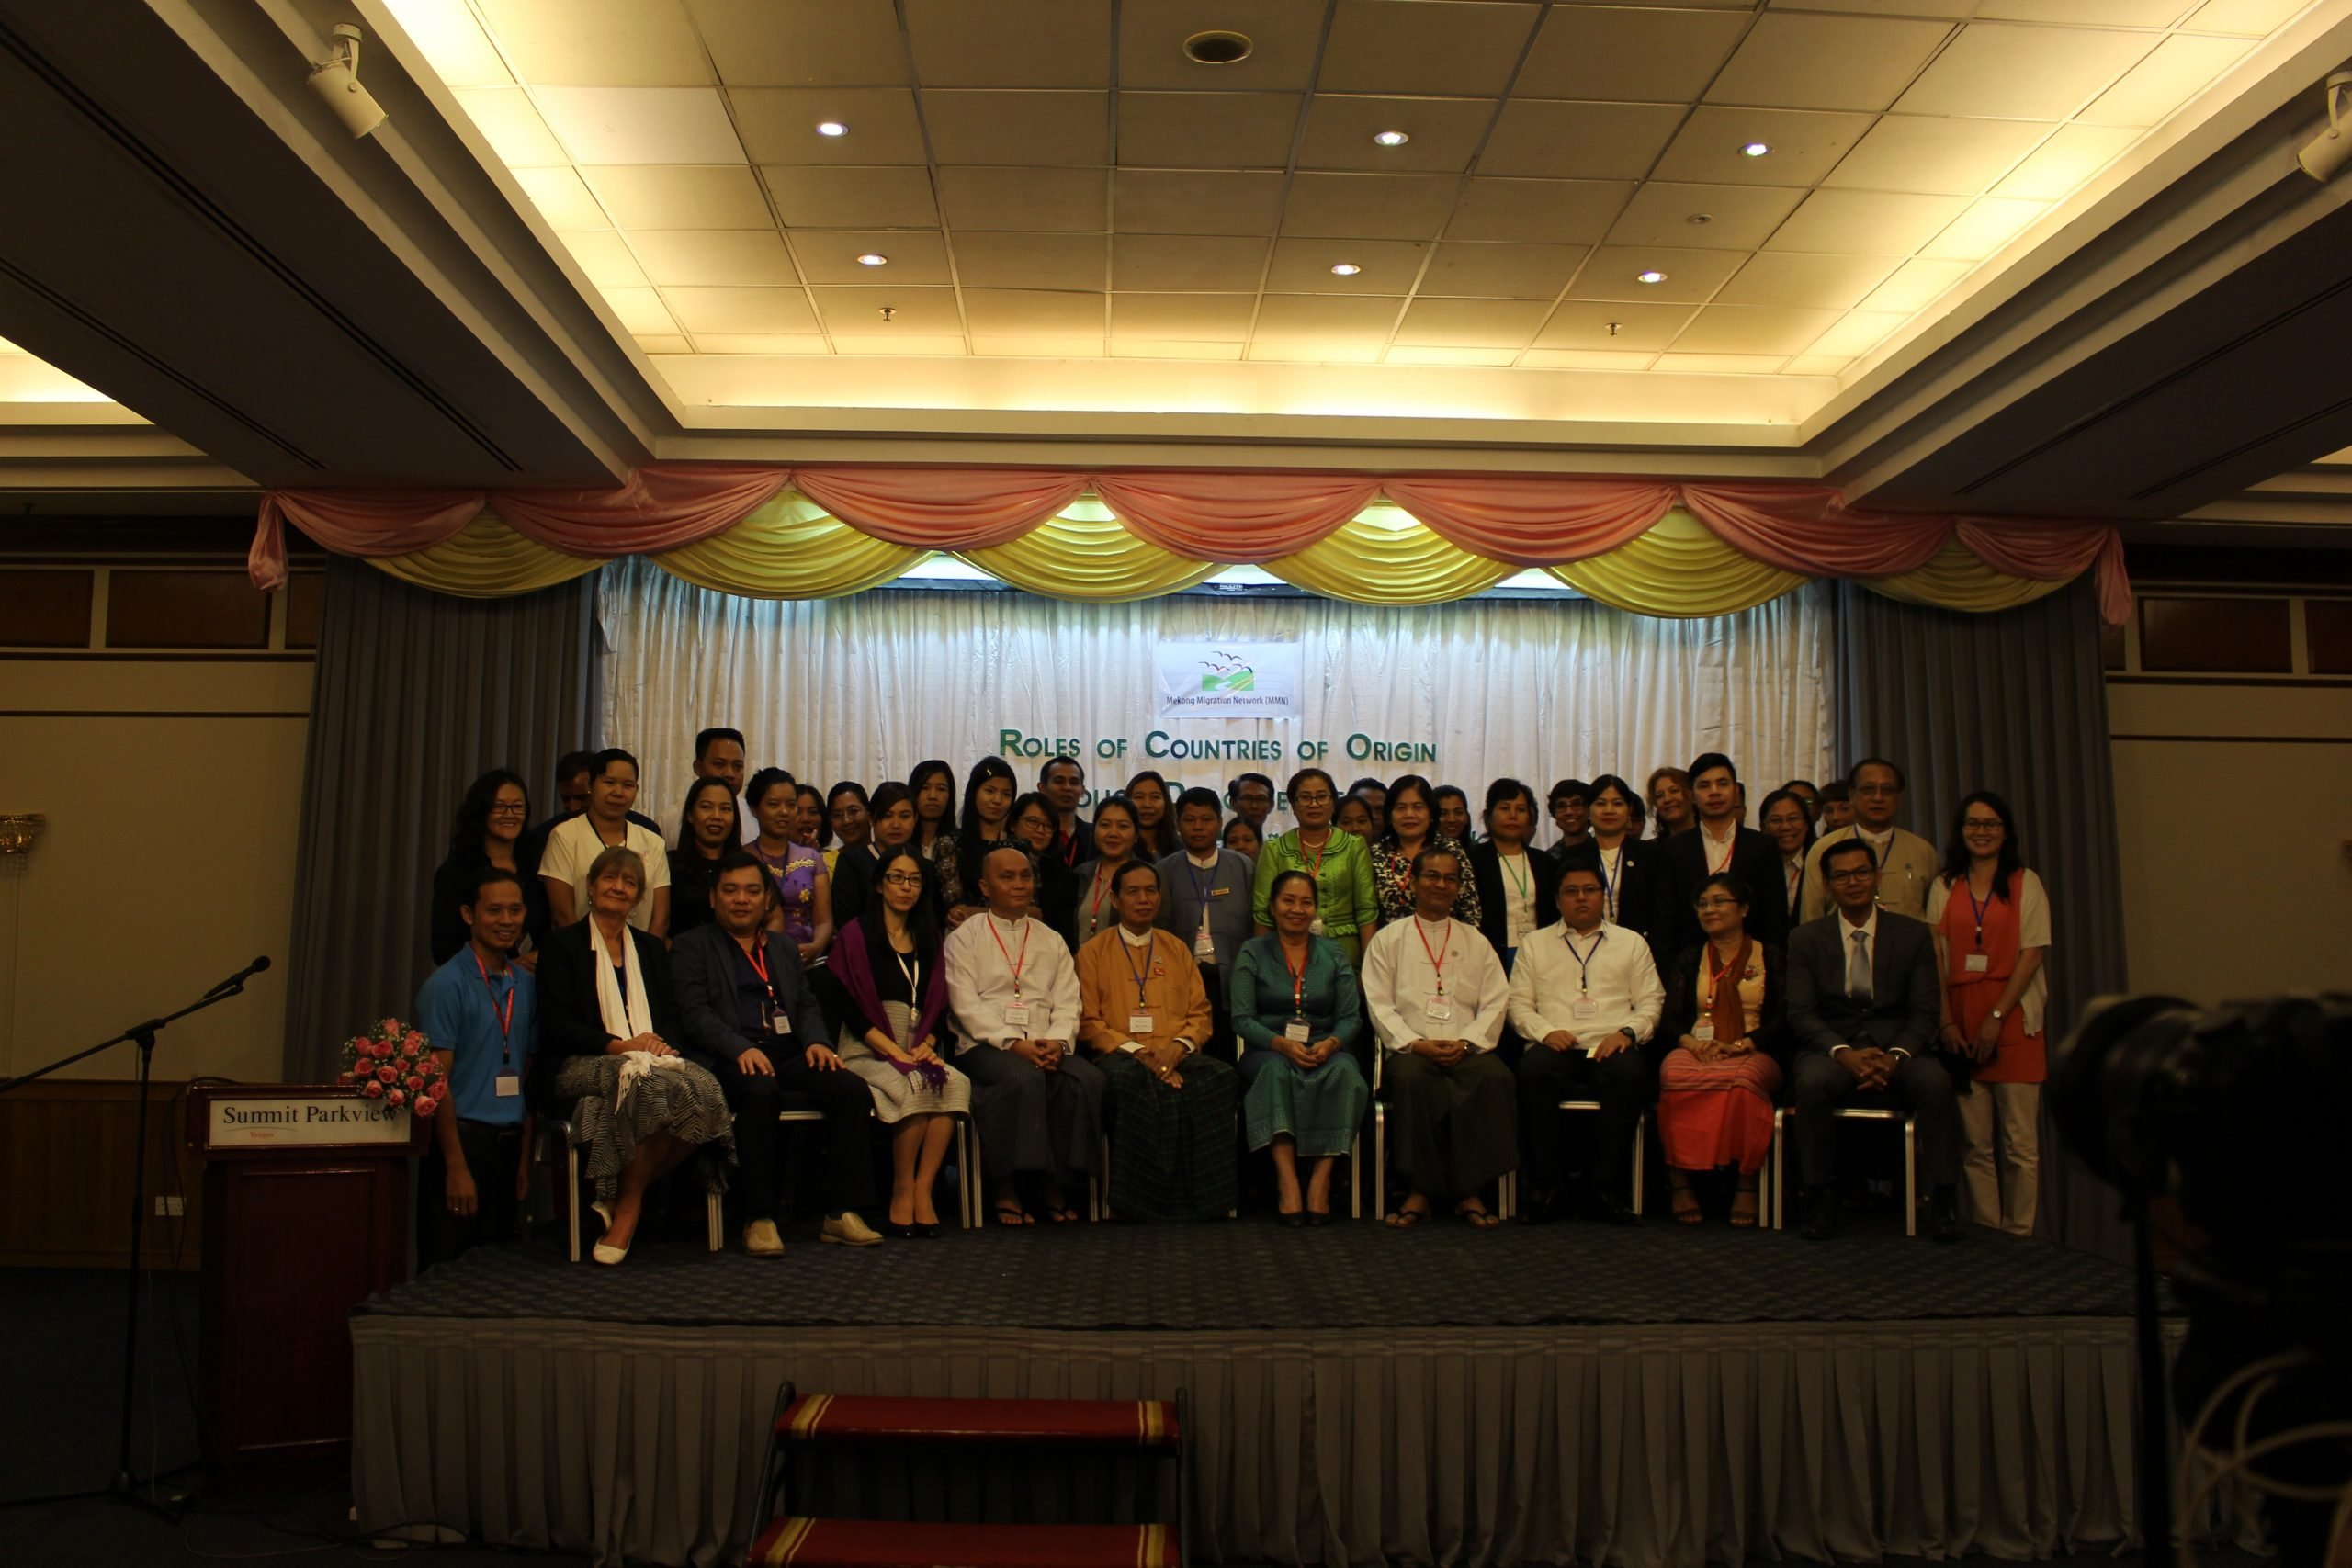 First Policy Dialogue on the Roles of Countries of Origin, July 2017, Yangon, Myanmar